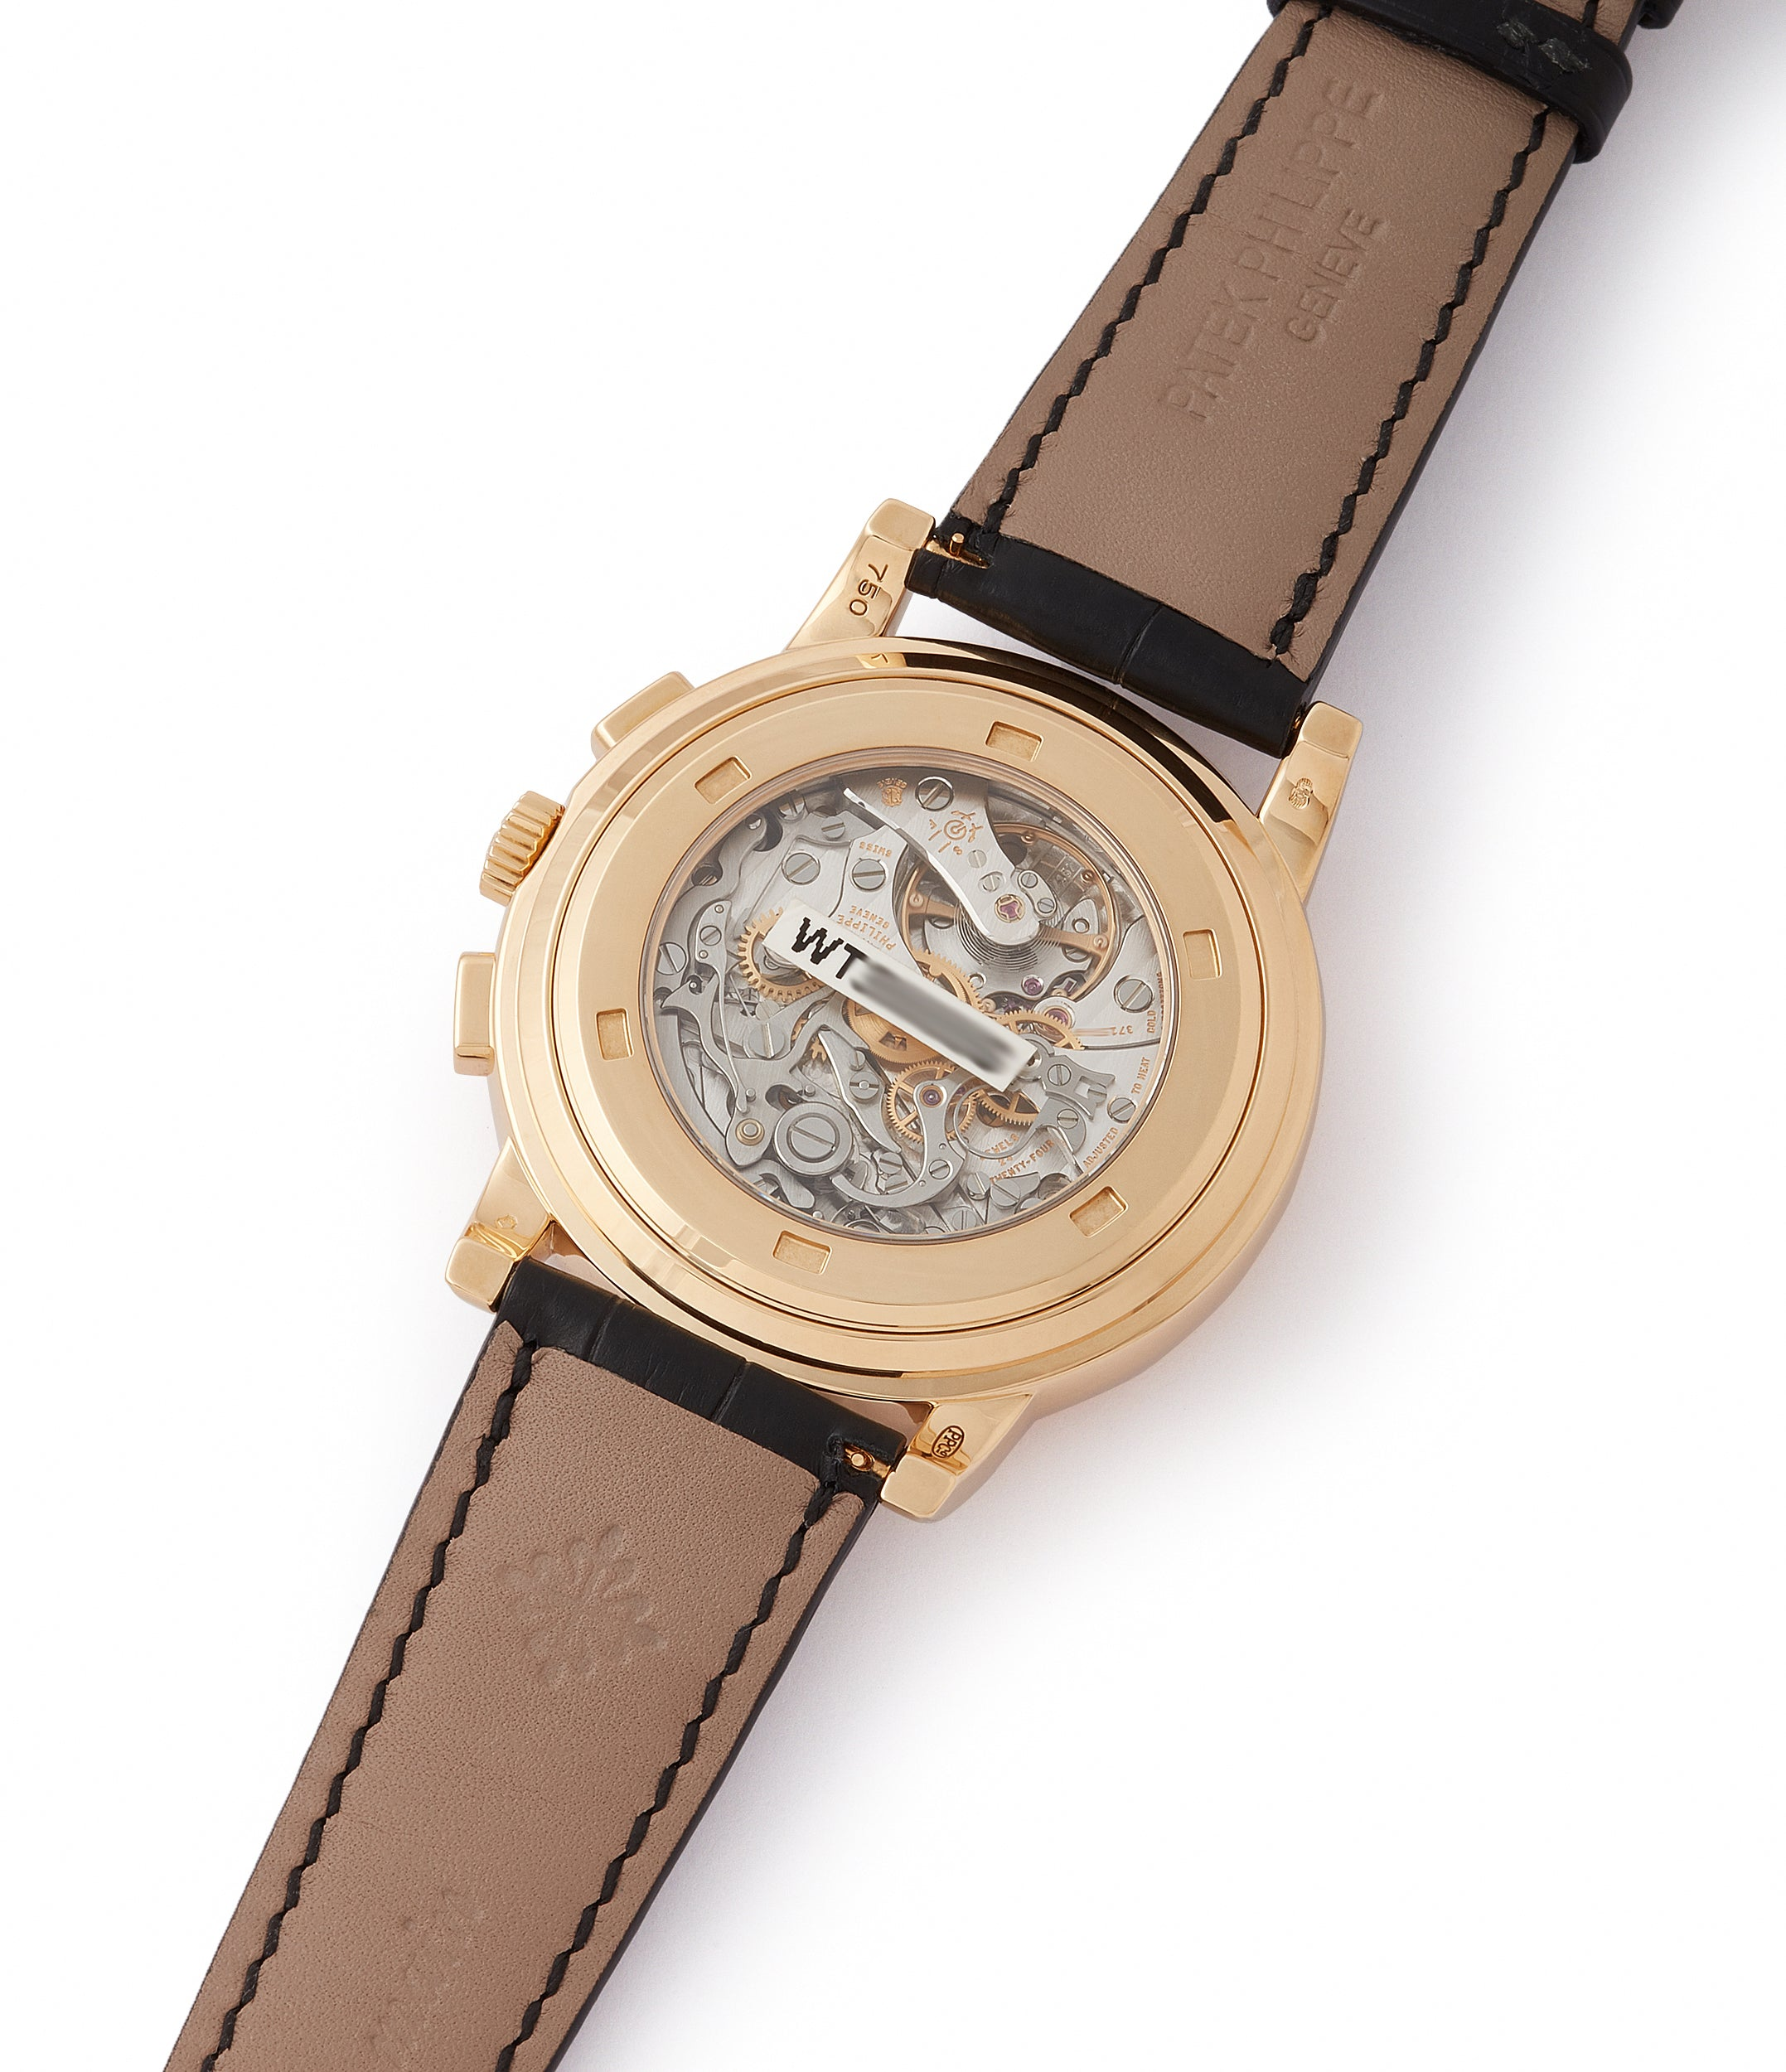 calibre CH 27-70 Patek Philippe 5070J-012 Saatchi Edition Chronograph brown dial yellow gold watch for sale online at A Collected Man London UK specialist of rare watches